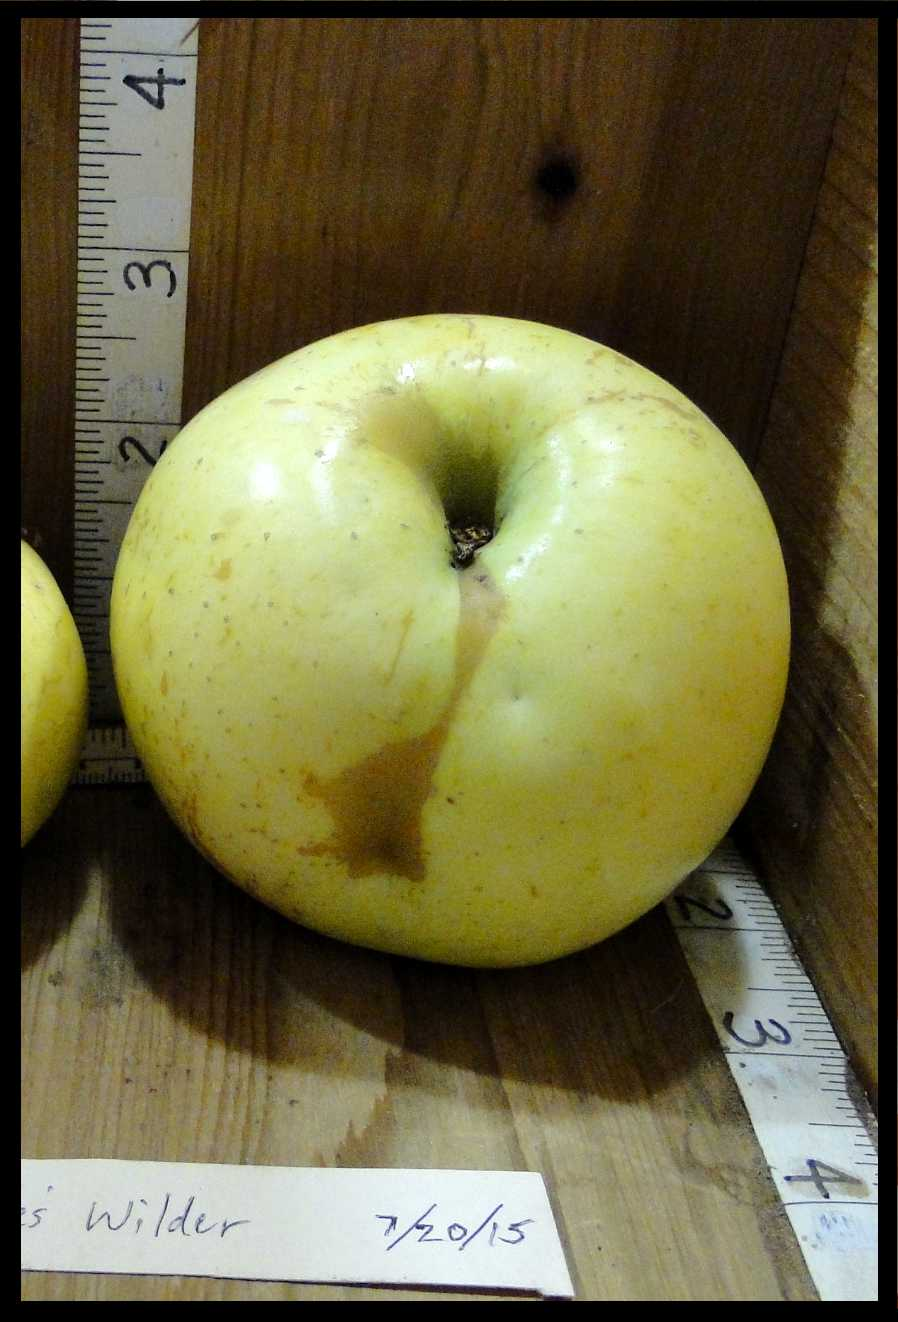 yellowish white apple with small brown spots